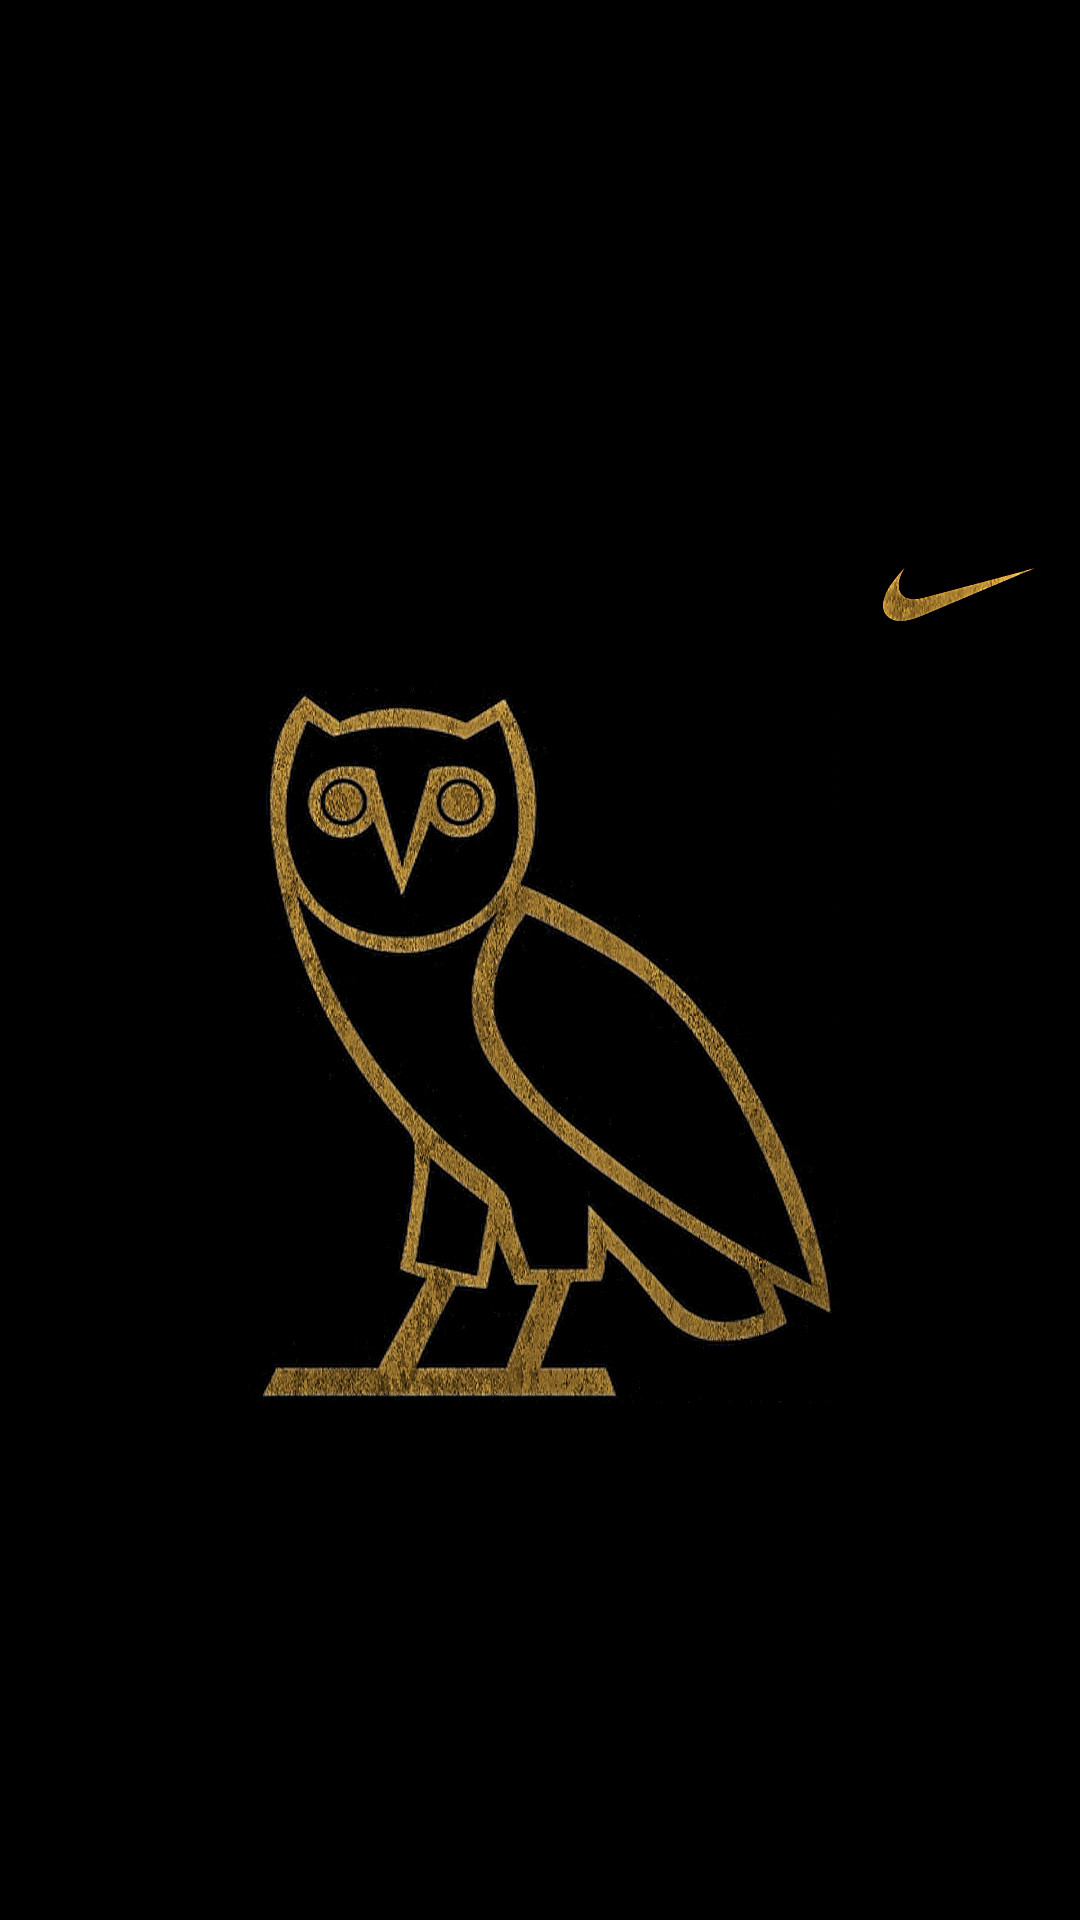 hd nike wallpaper for iphone